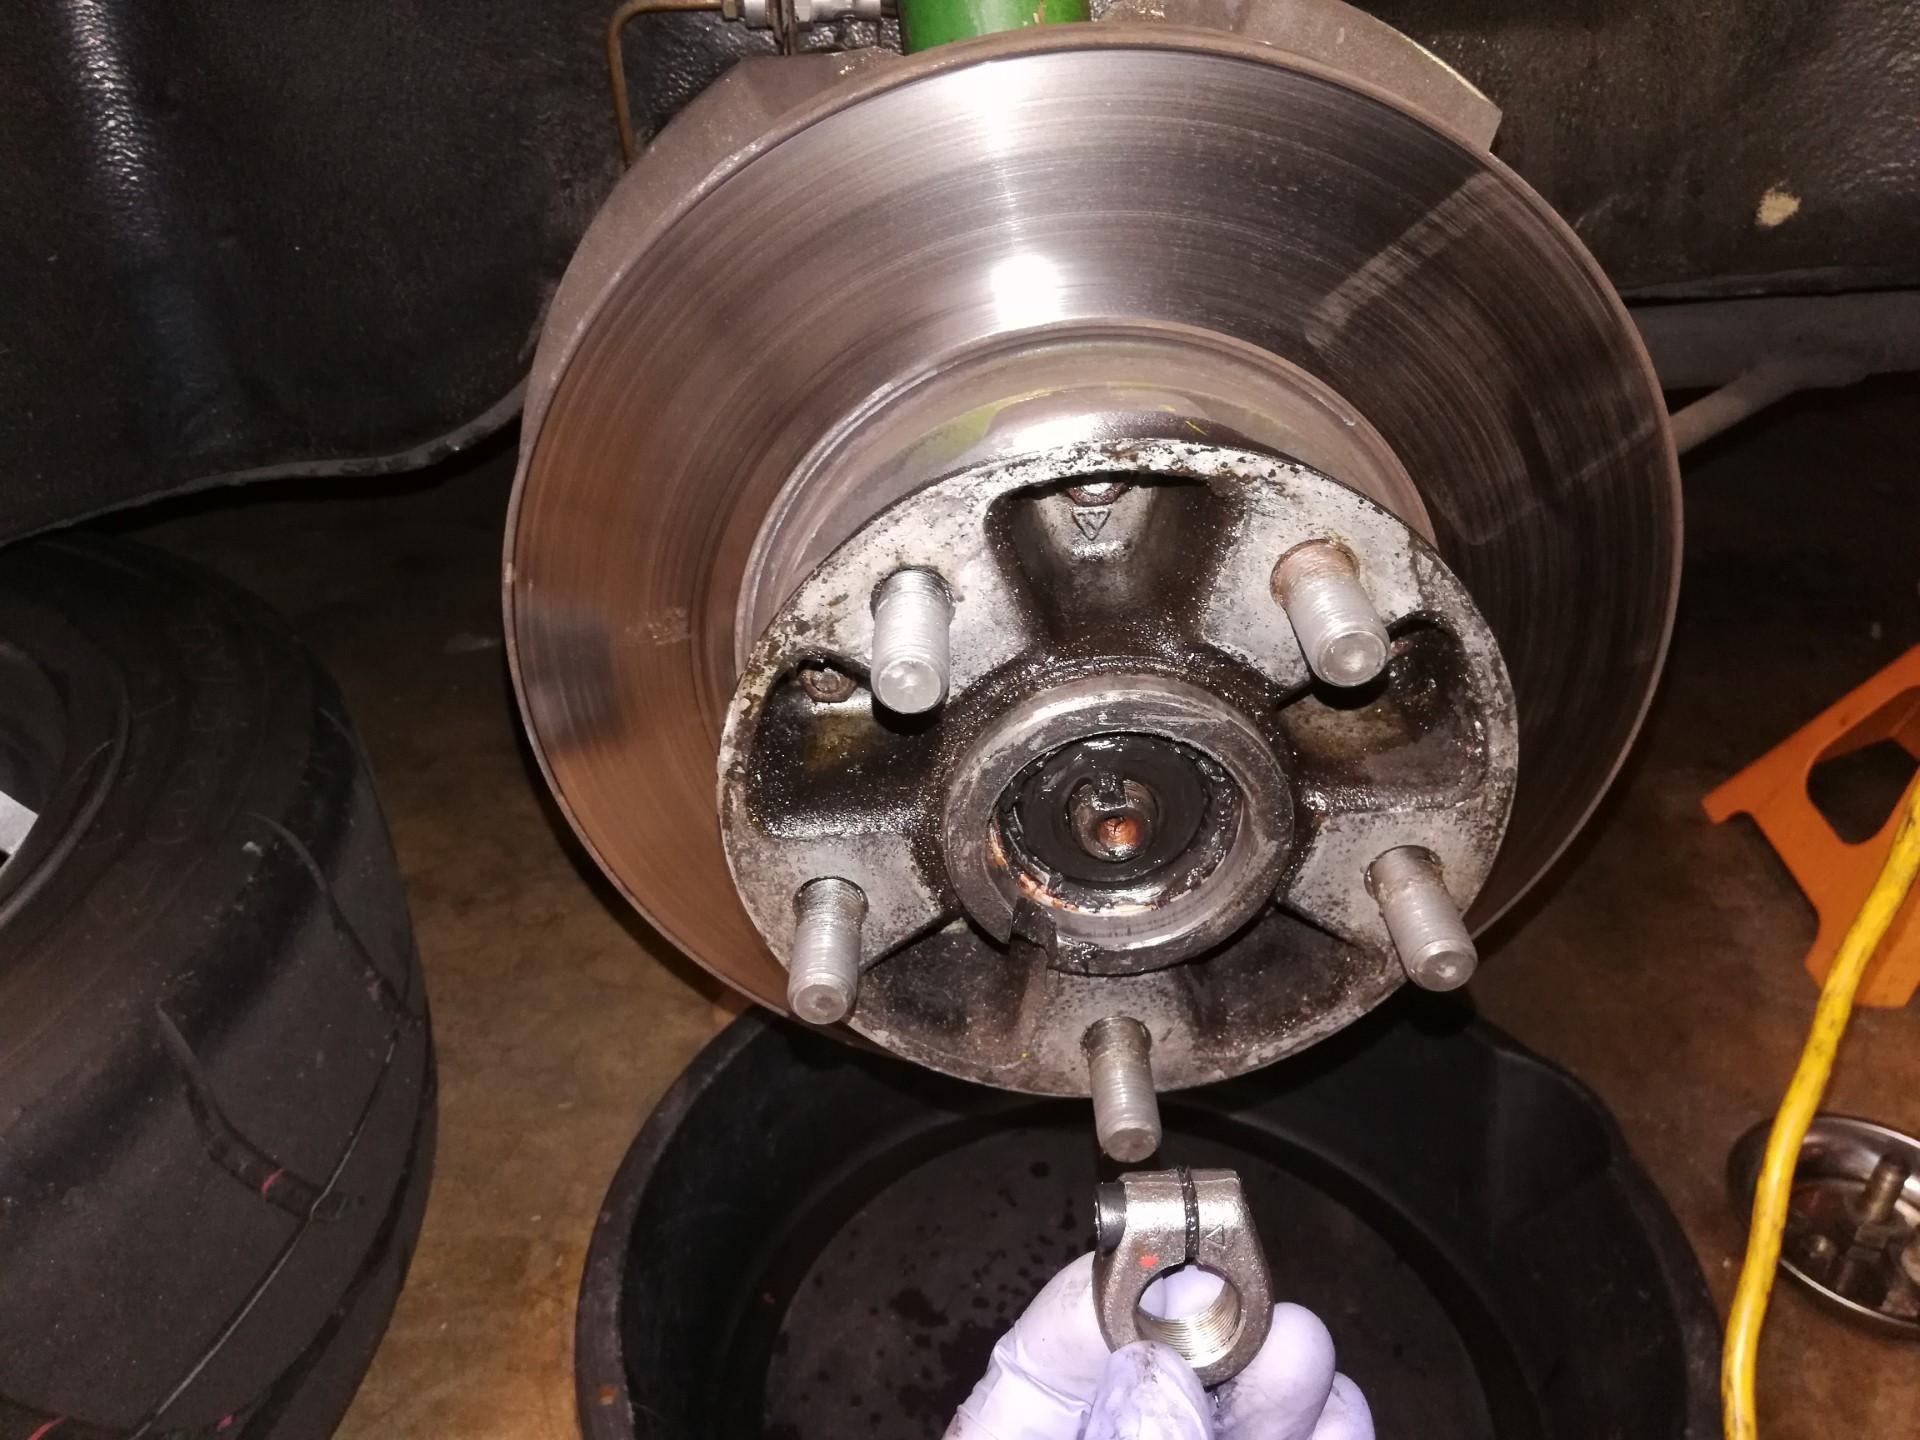 Air-cooled Porsche 911 front wheel hub removal